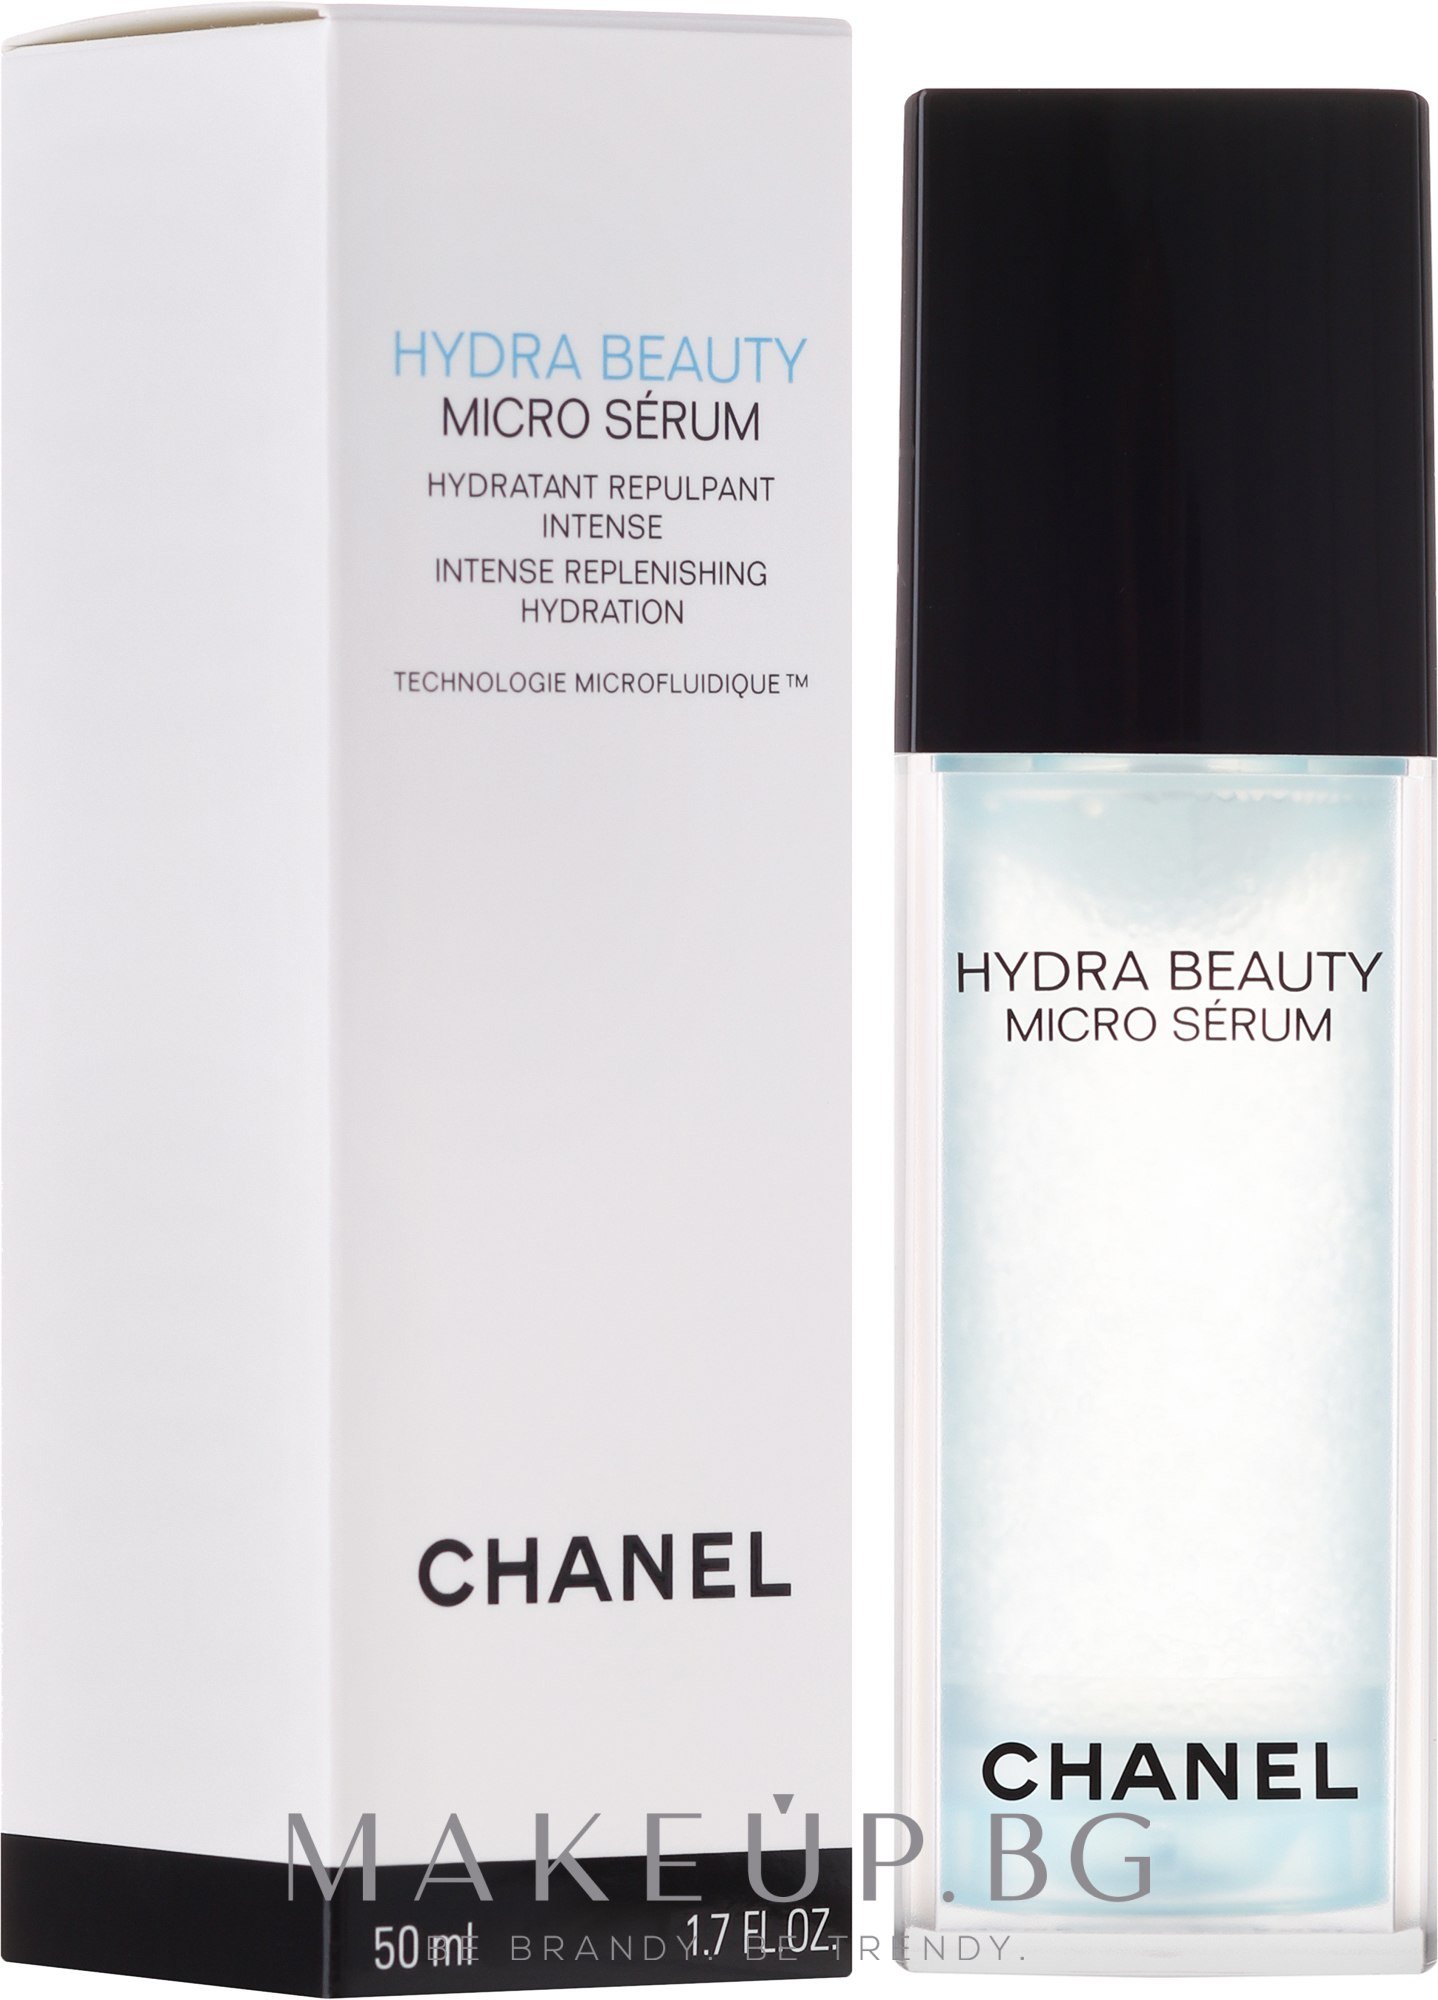 Овлажняващ серум за лице - Chanel Hydra Beauty Micro Serum — снимка 50 ml